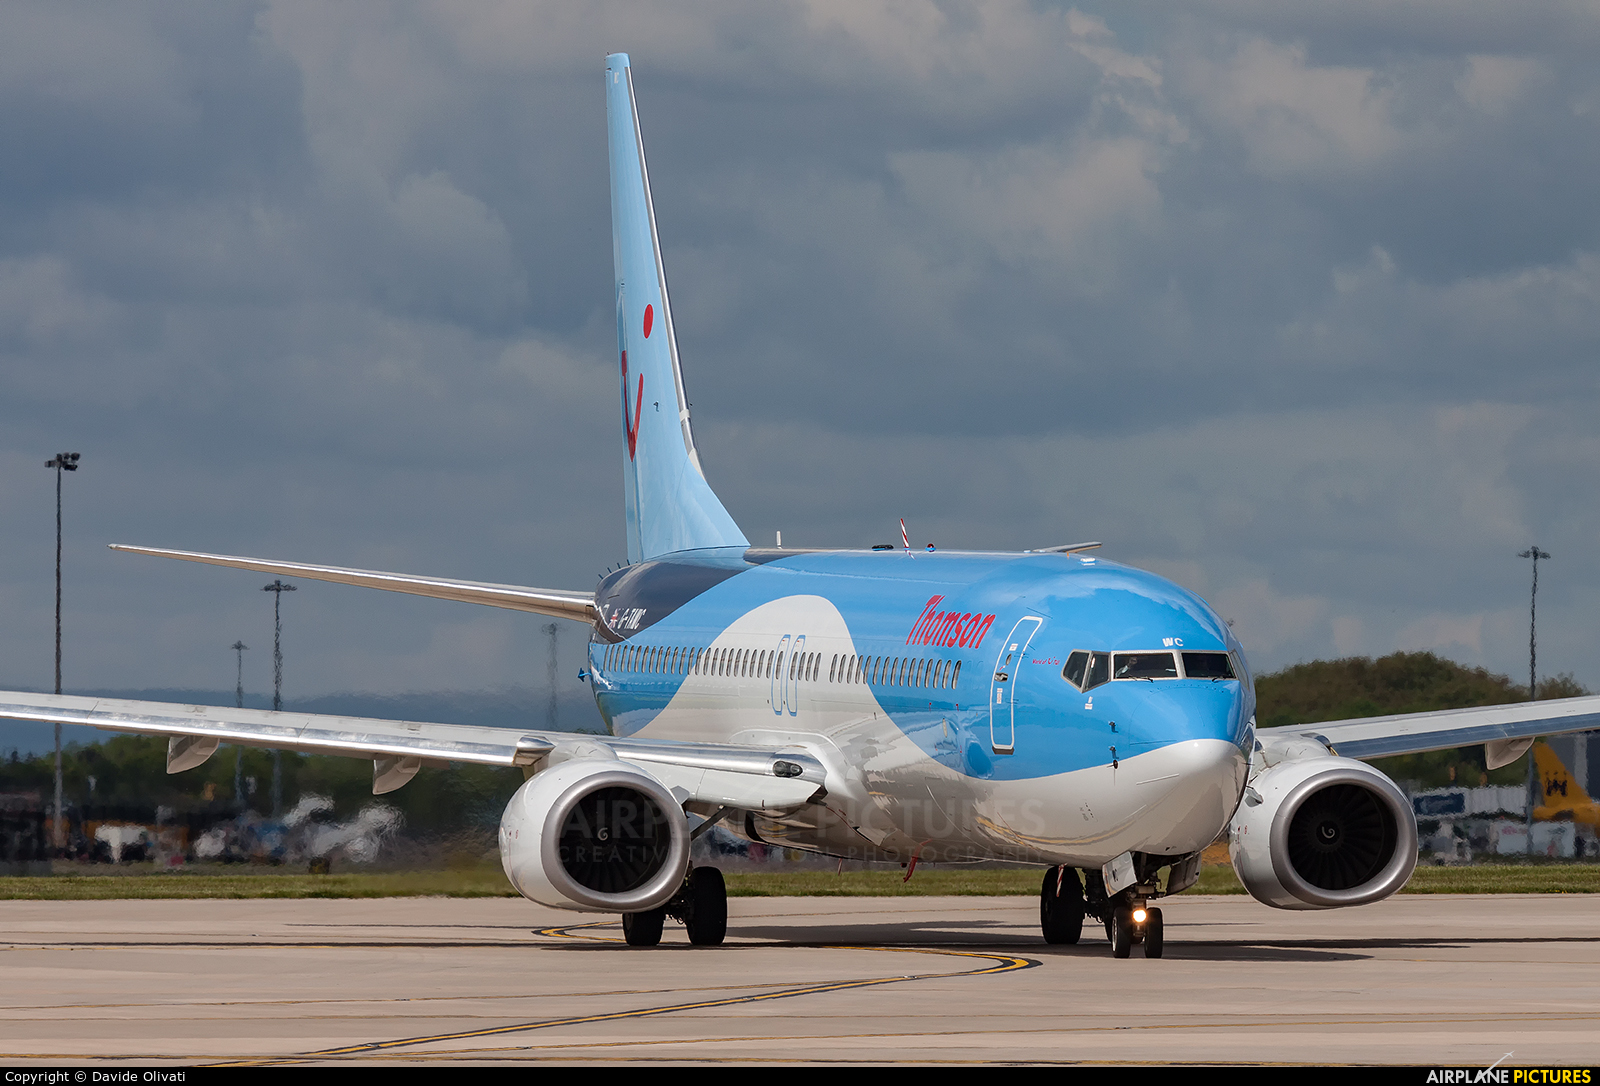 TUI Airways G-TAWC aircraft at Manchester